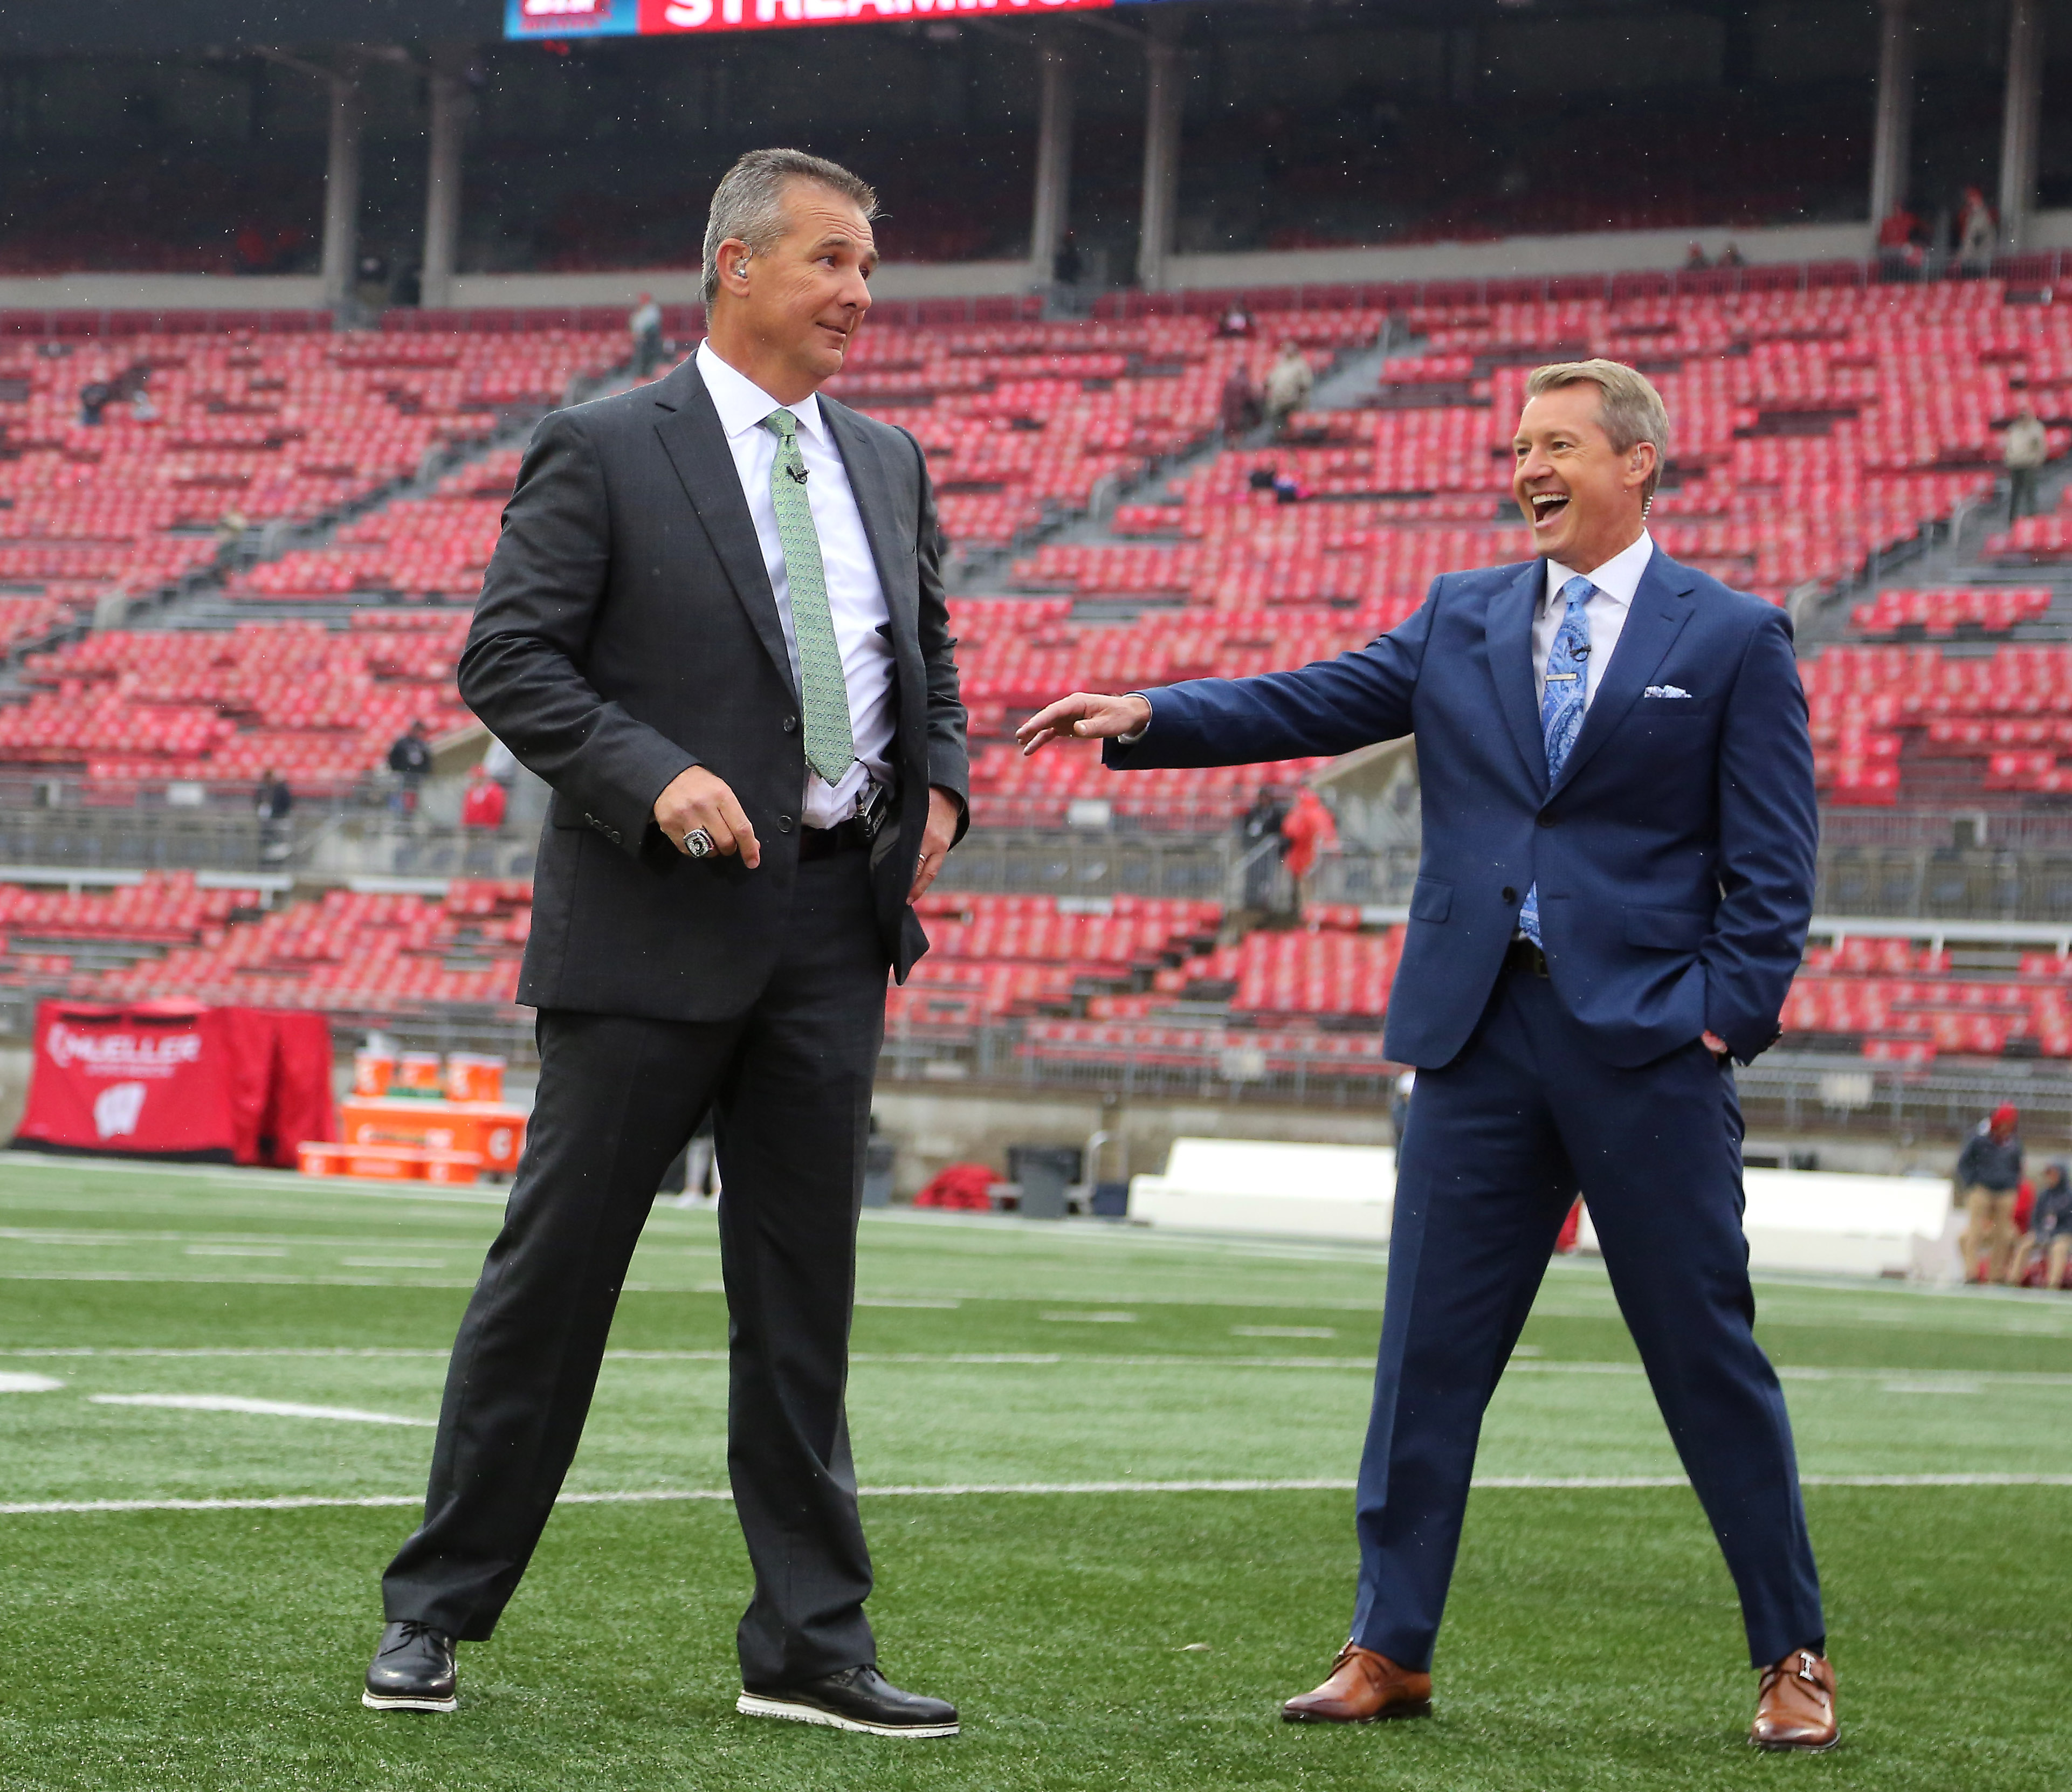 Ohio State Buckeyes former head coach Urban Meyer with Fox broadcaster Rob Stone before the game between the Ohio State Buckeyes and the Wisconsin Badgers at Ohio Stadium.